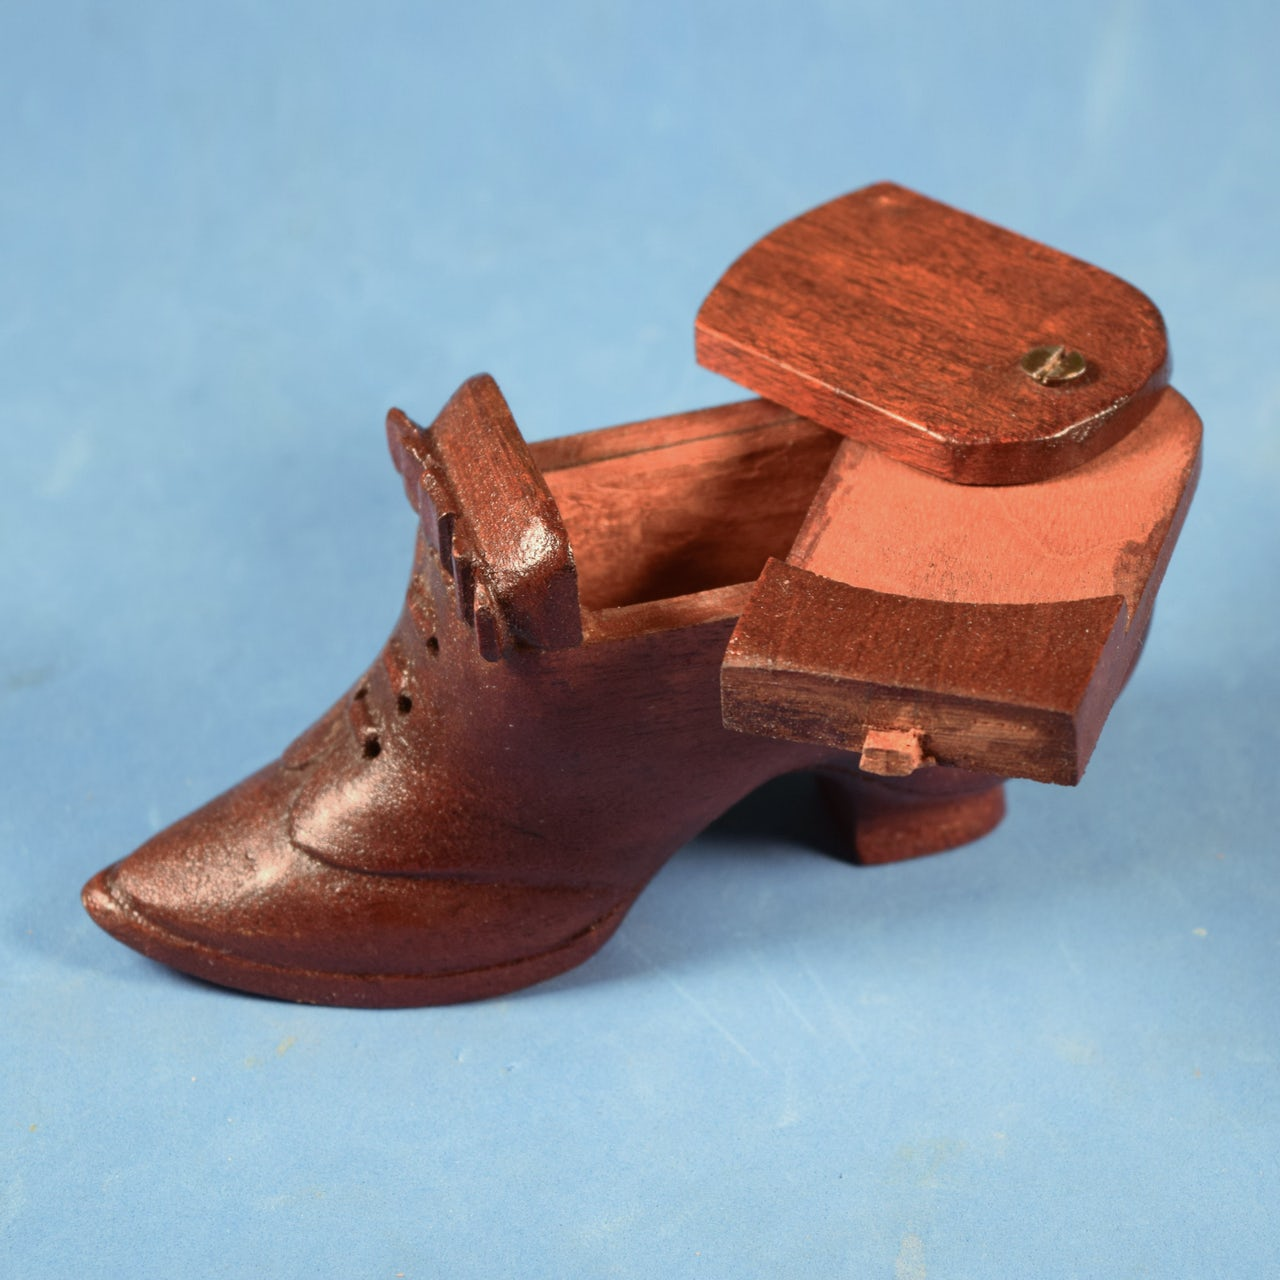 The odd wooden shoe